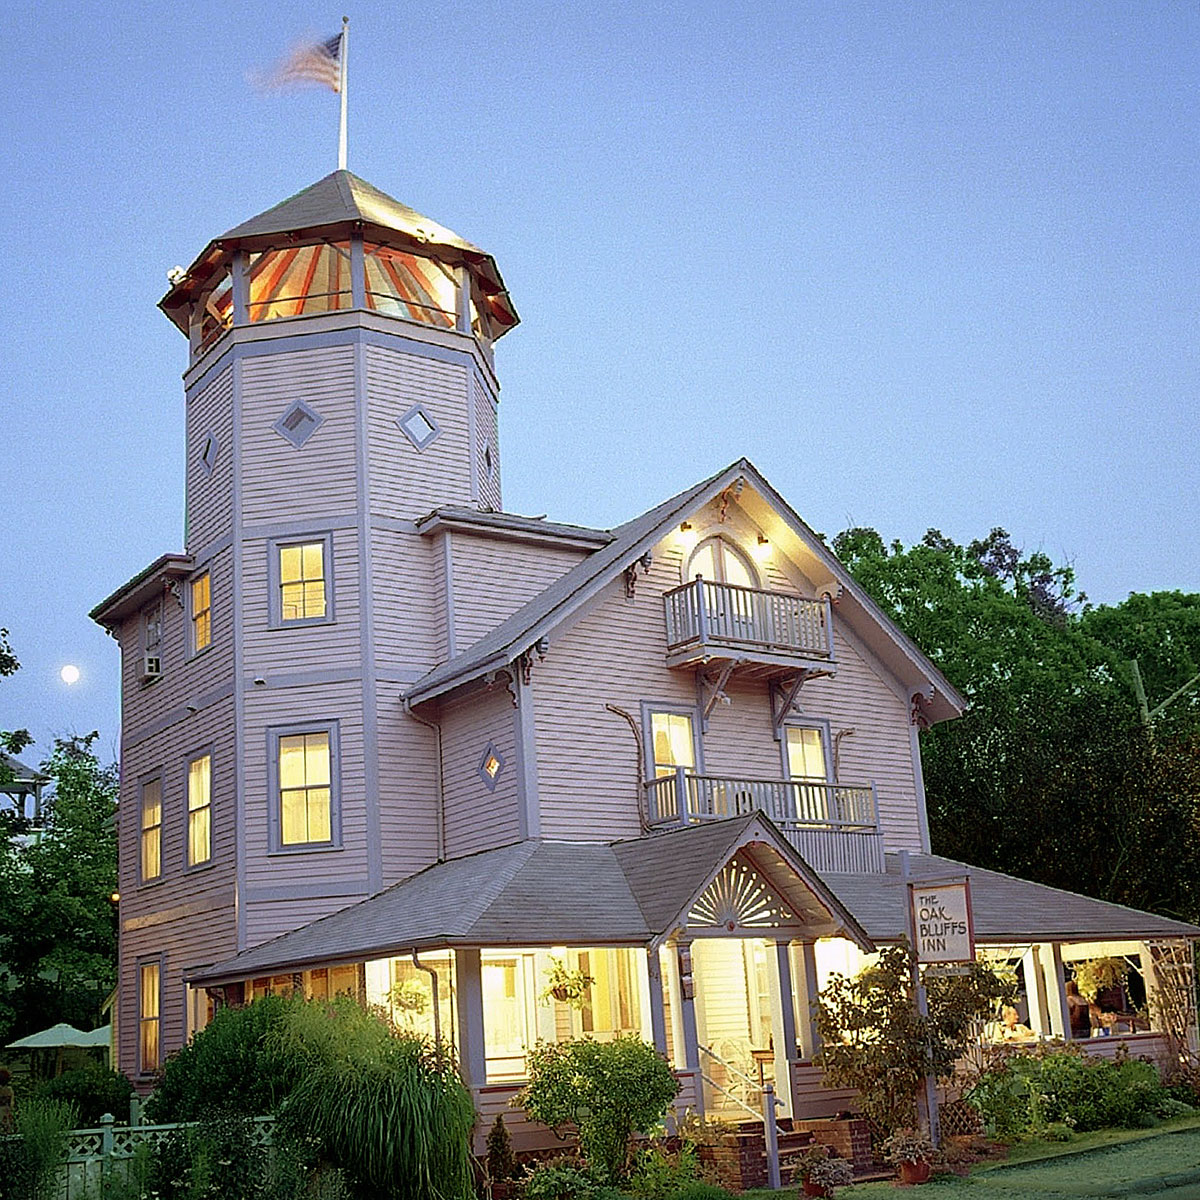 Oak Bluffs Inn - The Oak Bluffs Inn is your home away from home.